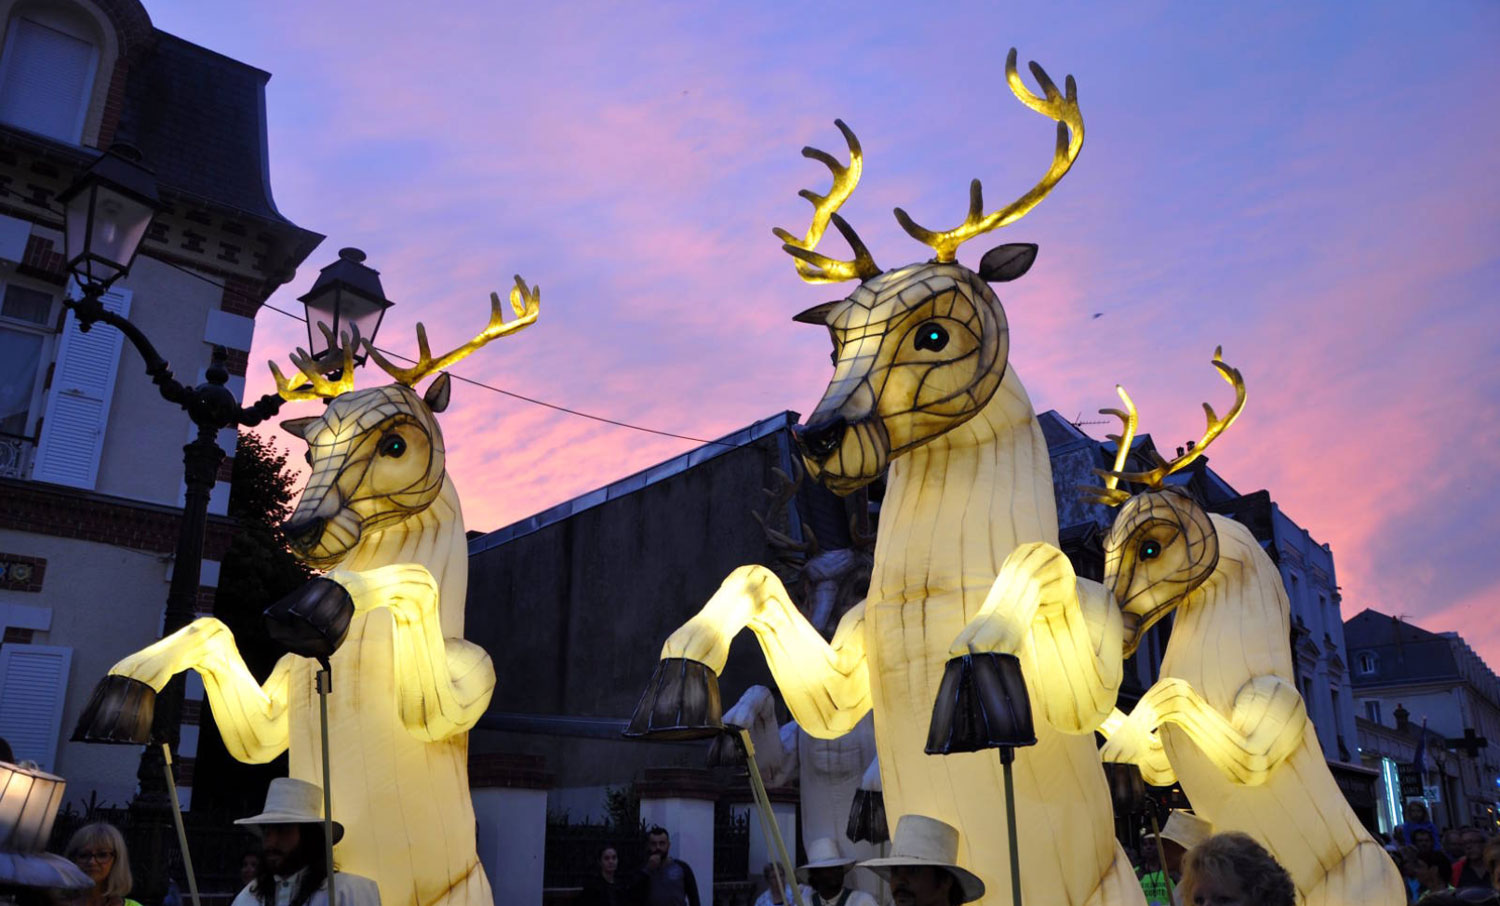 Photograph of the deer at La Parade Amoureuse